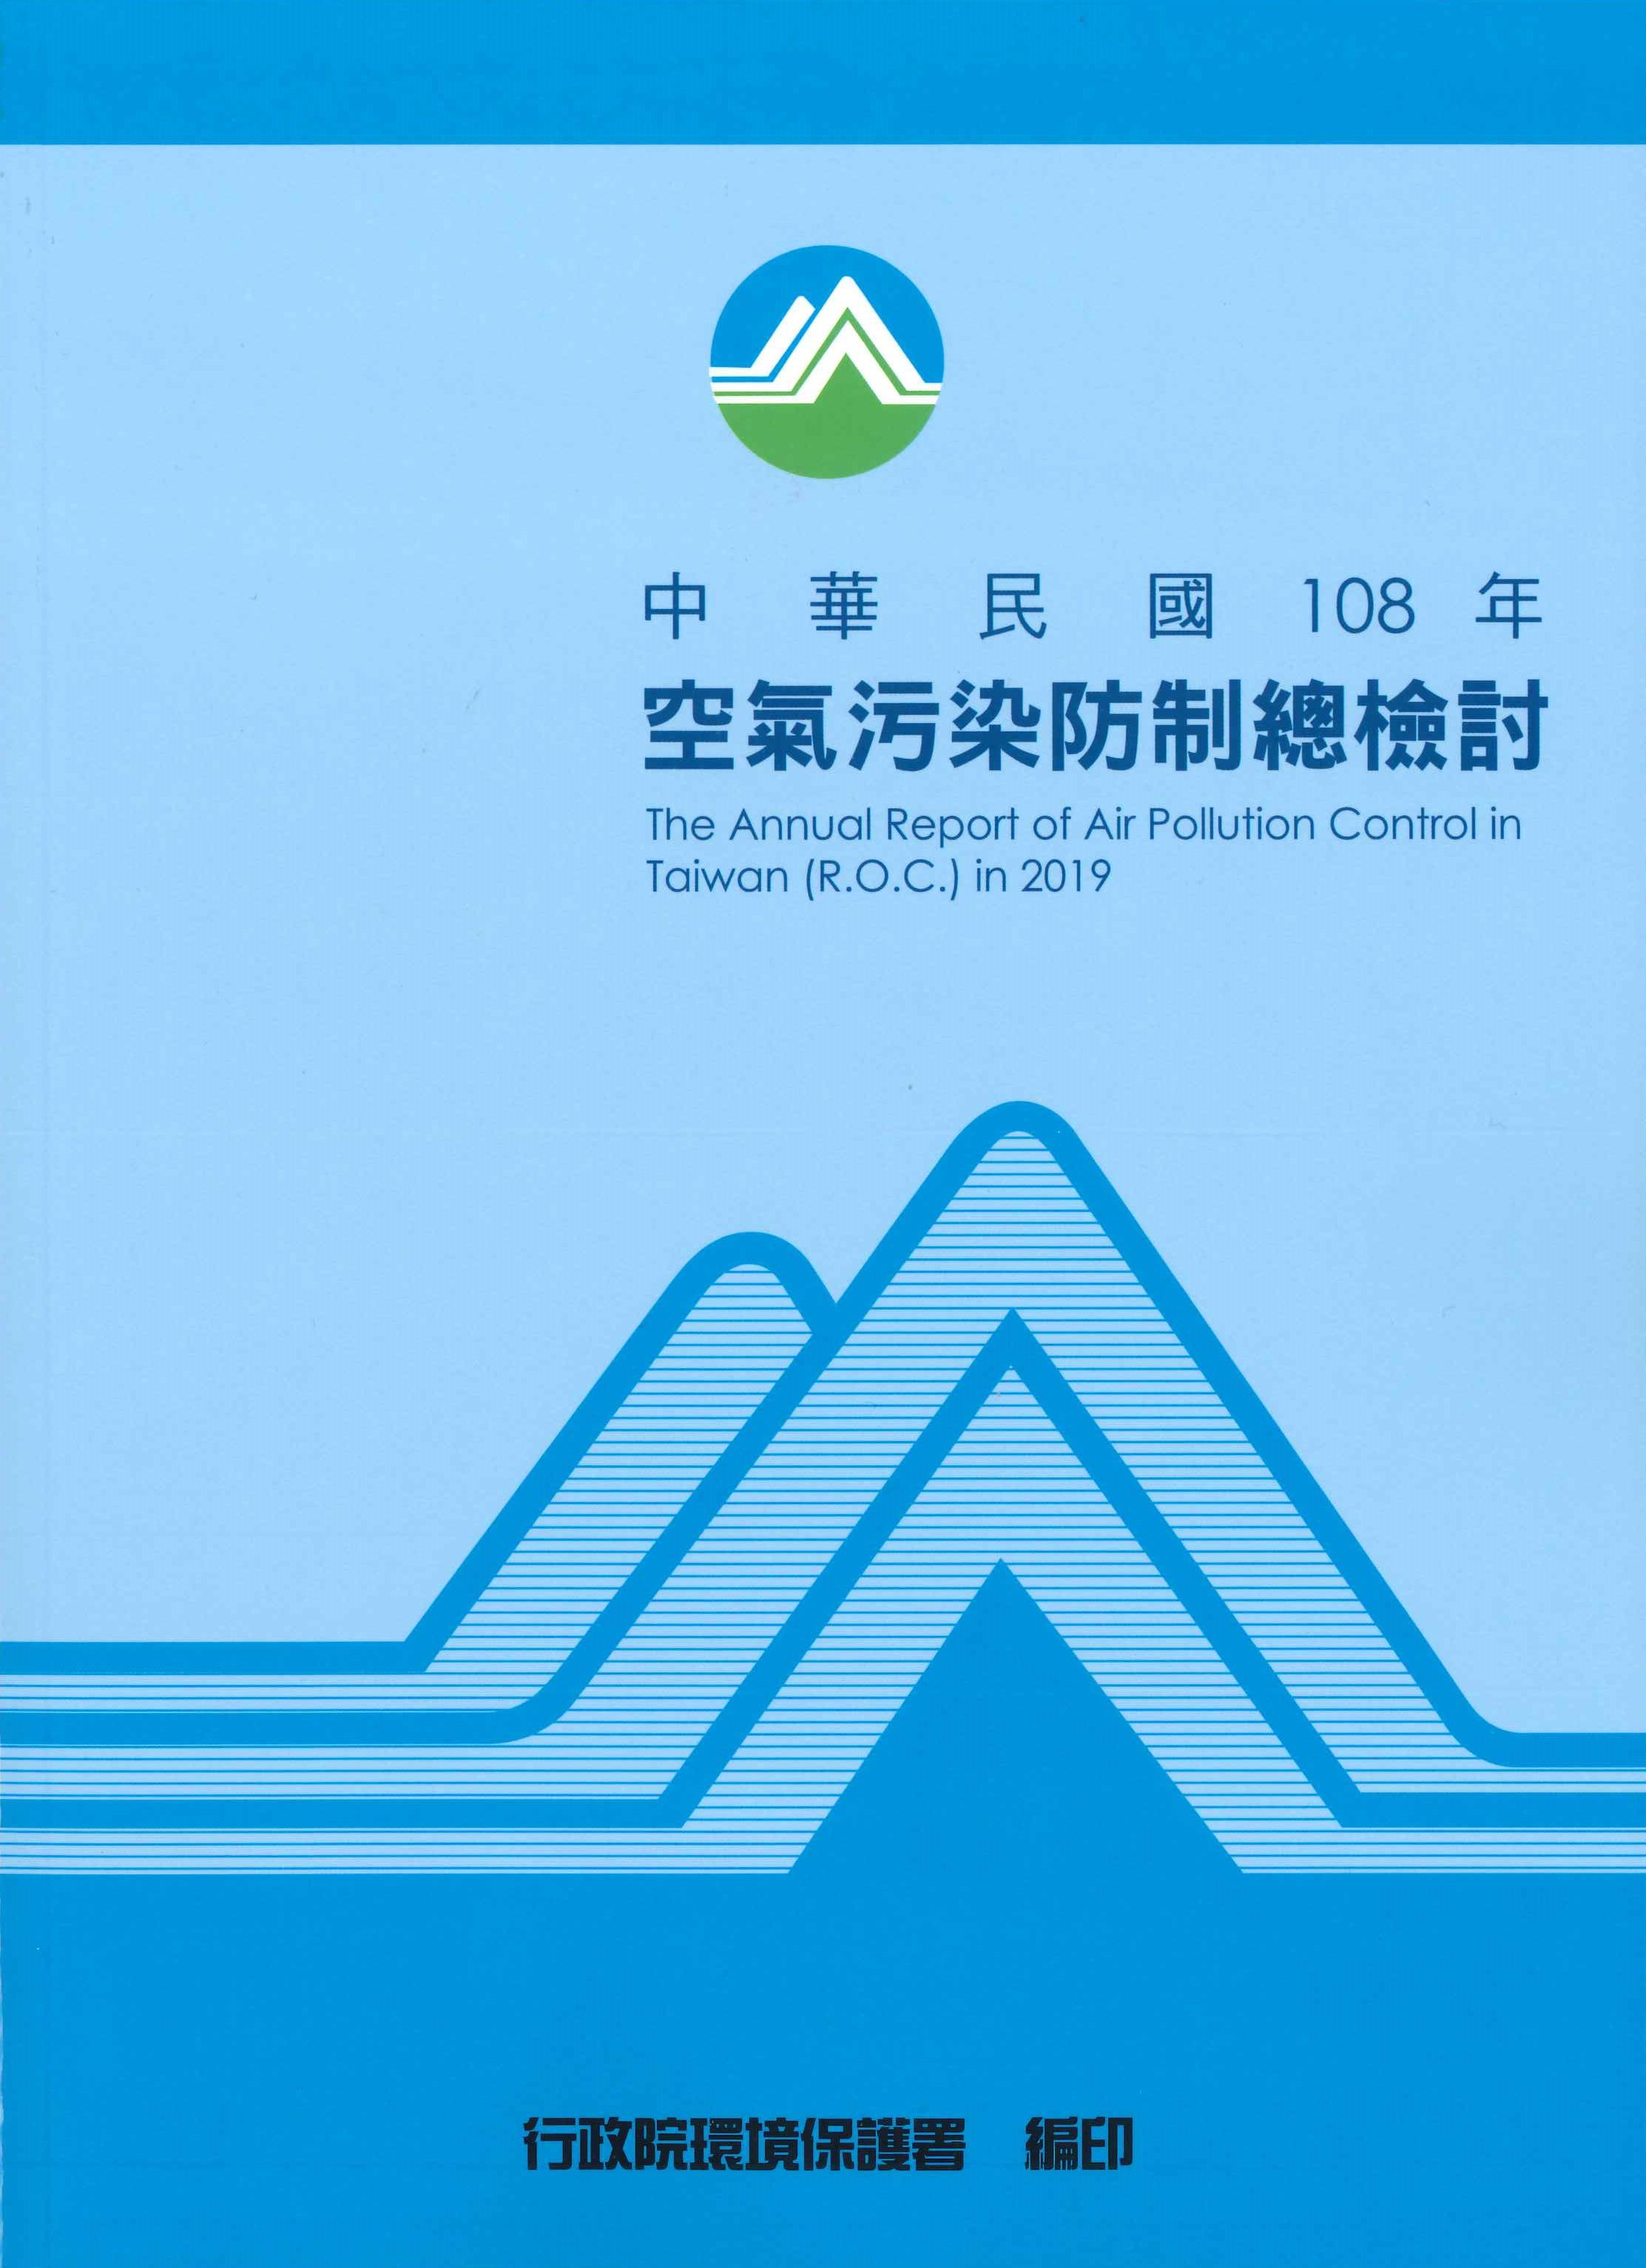 空氣污染防制總檢討=The annual report of air pollution control in Taiwan (R.O.C)